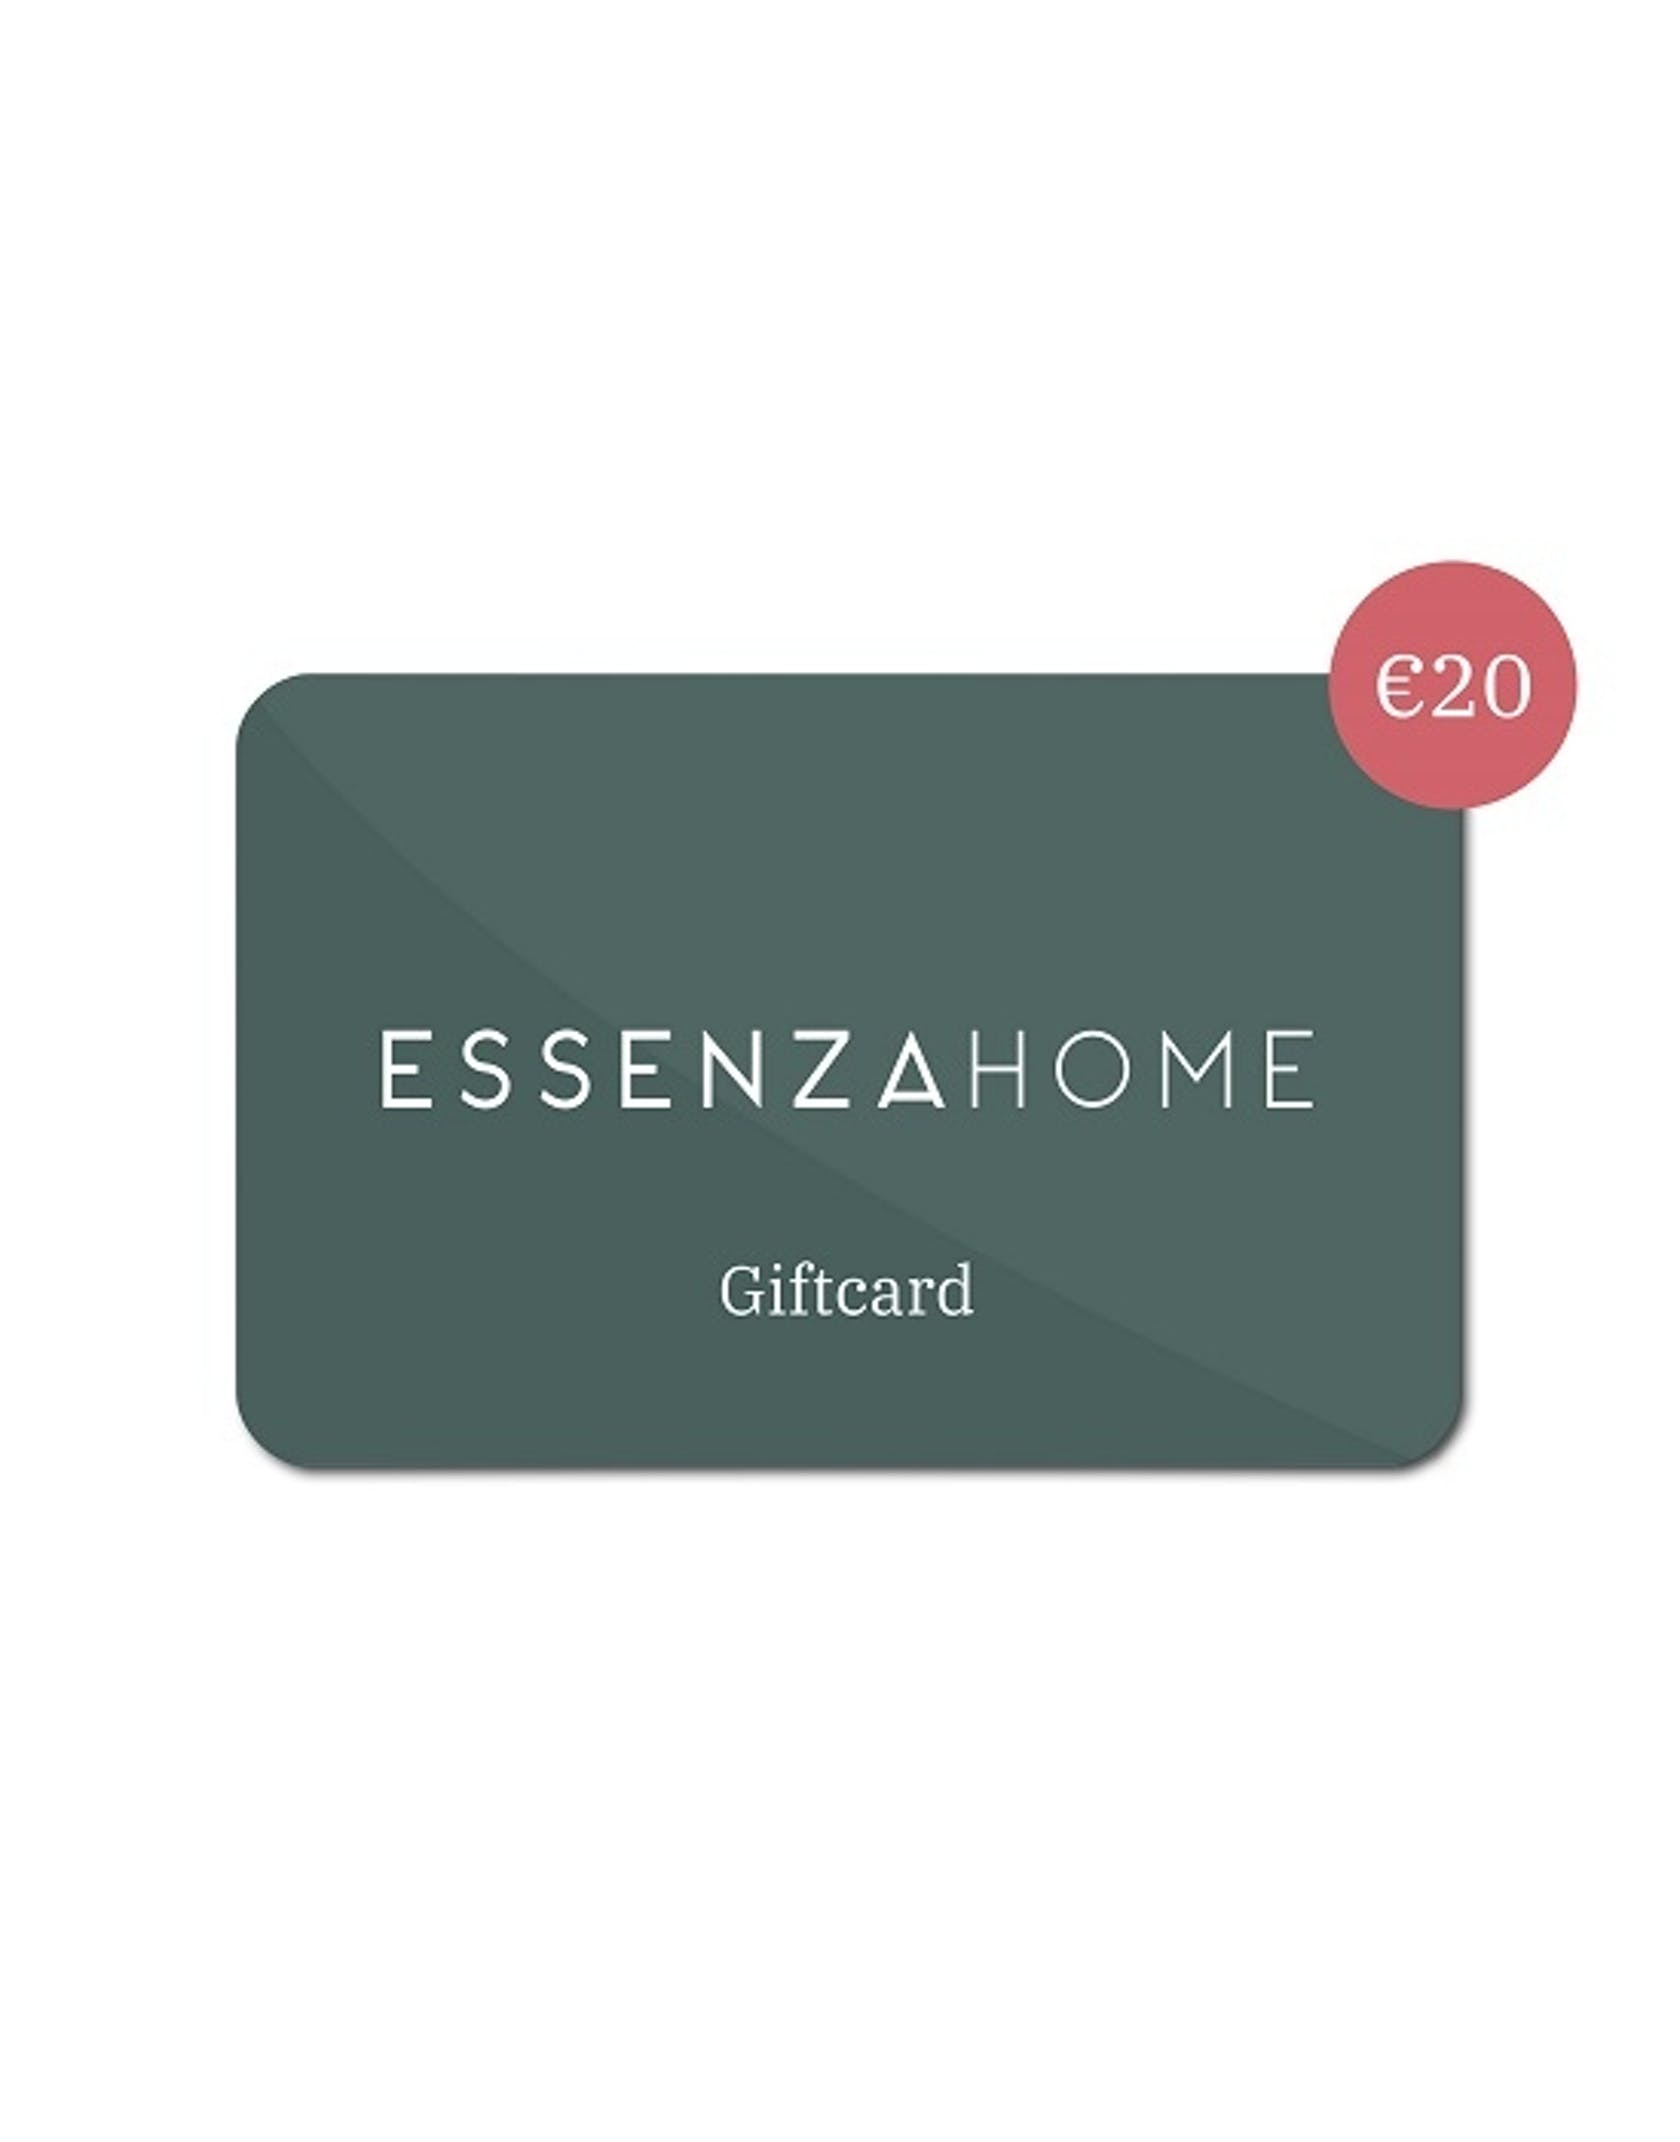 ESSENZA HOME Giftcard 20 Euro